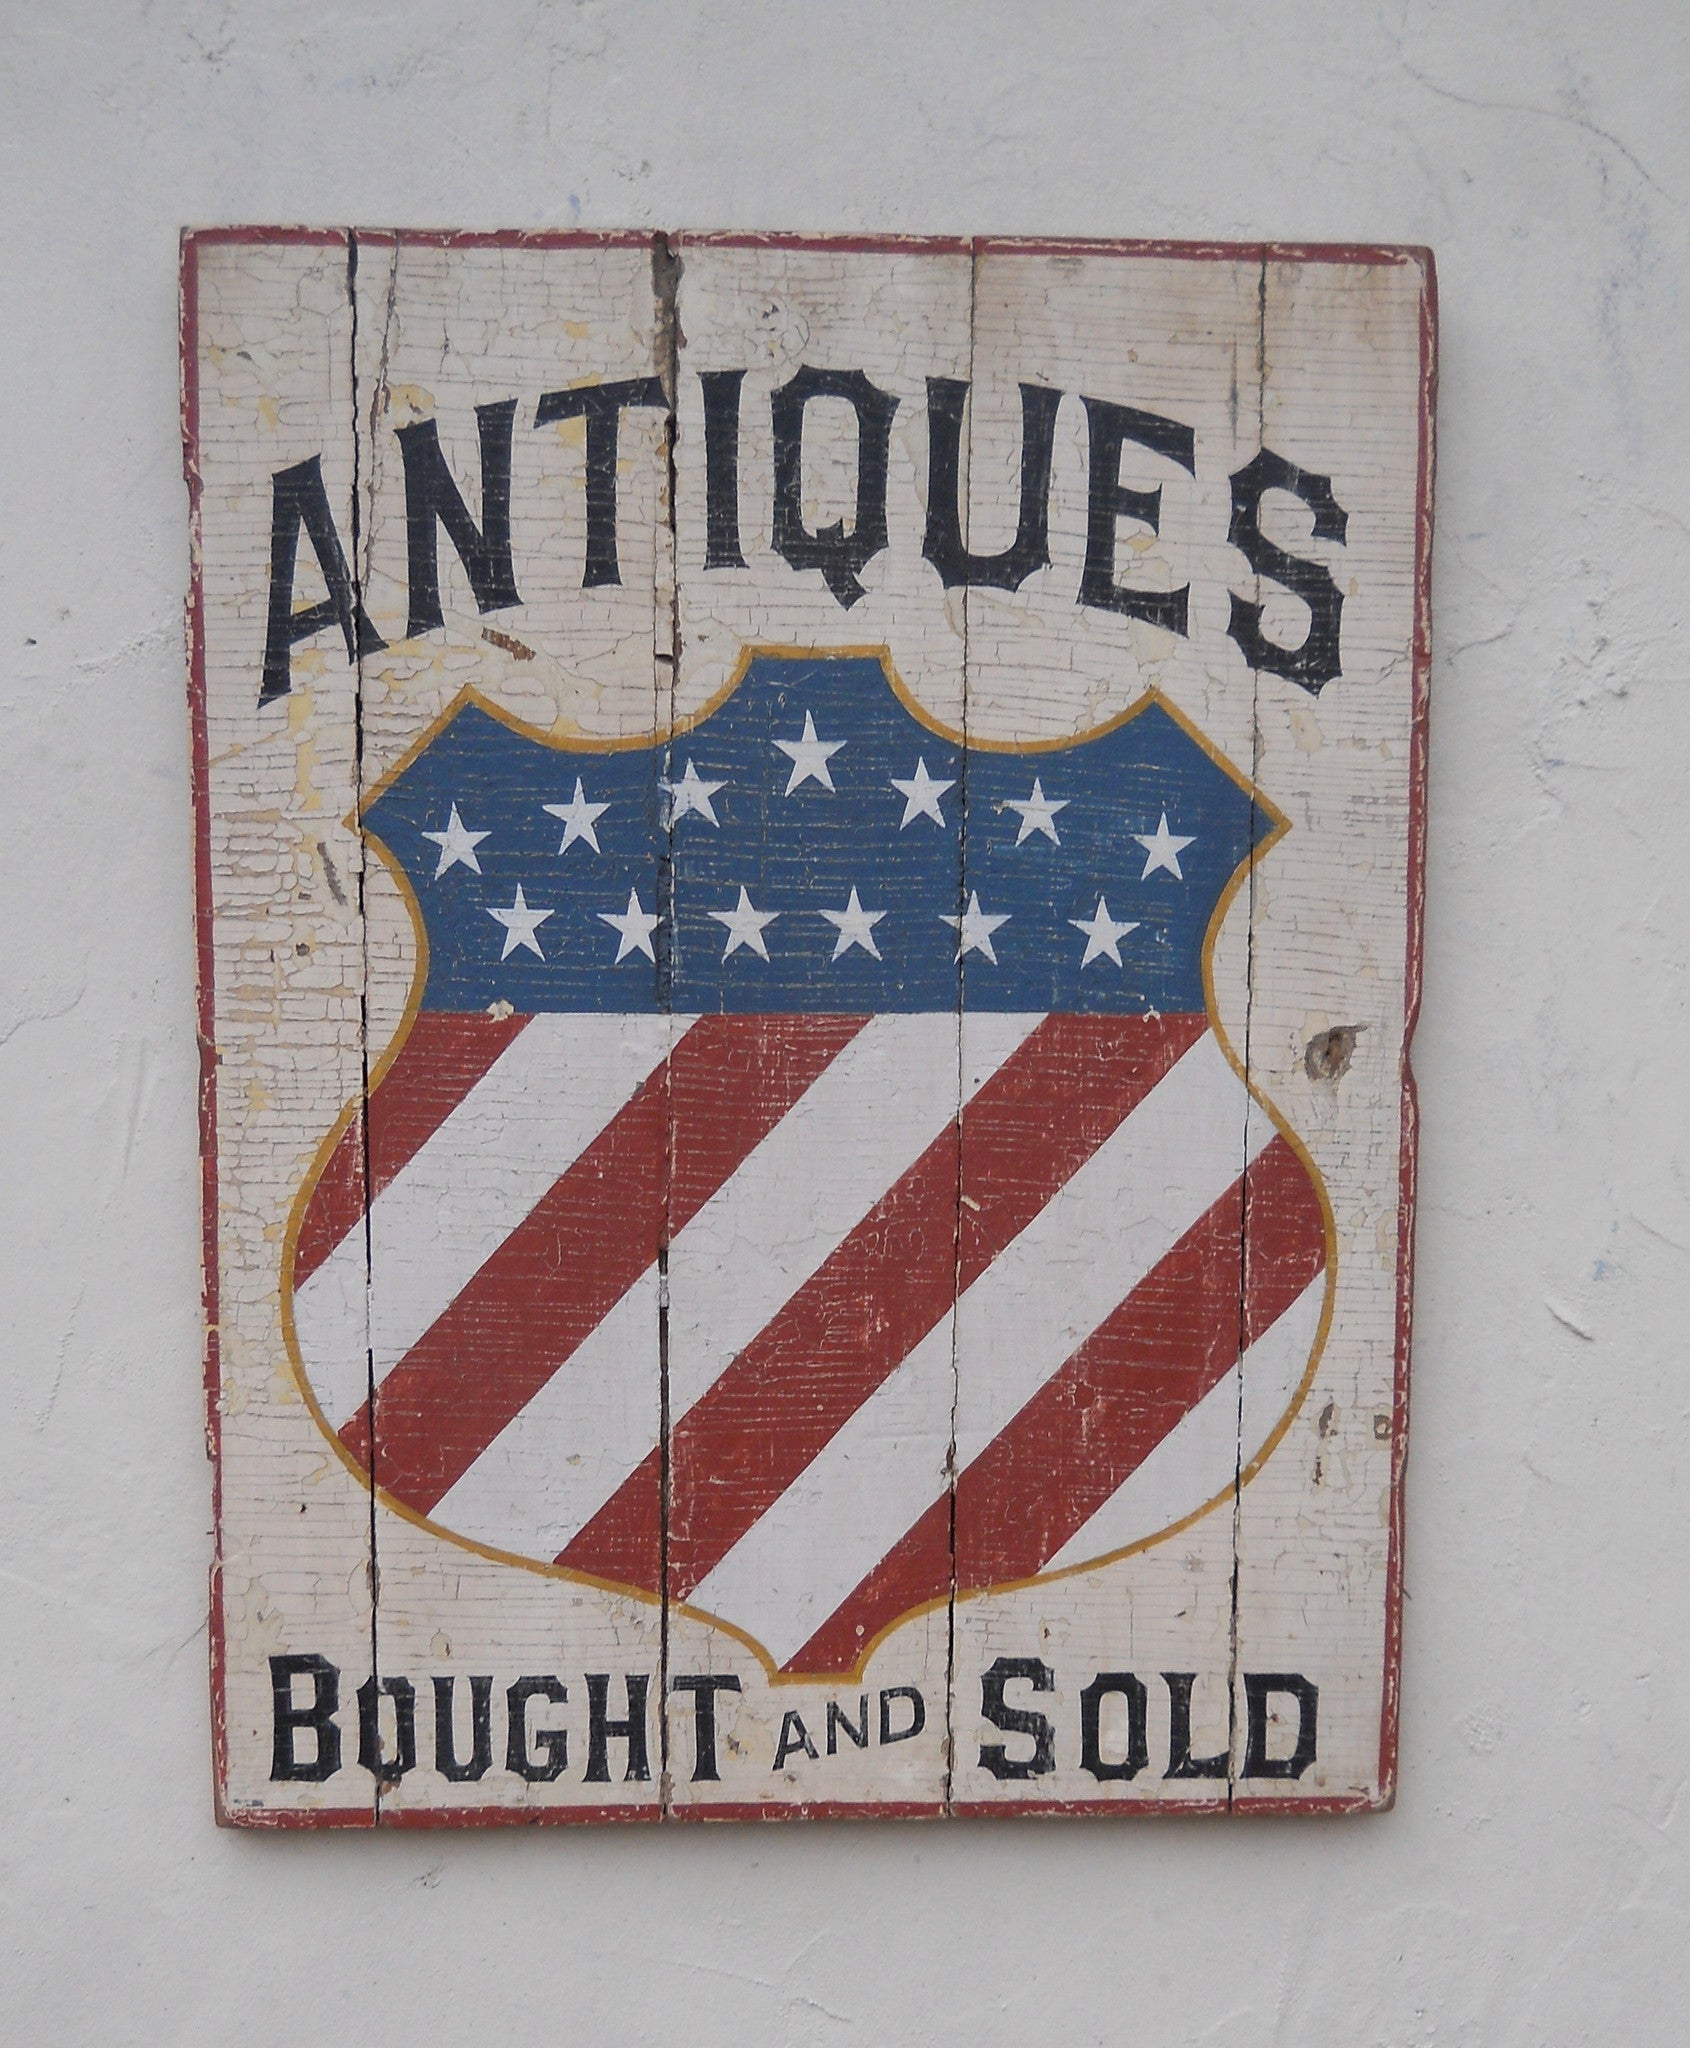 Antiques  Bought and Sold with Shield